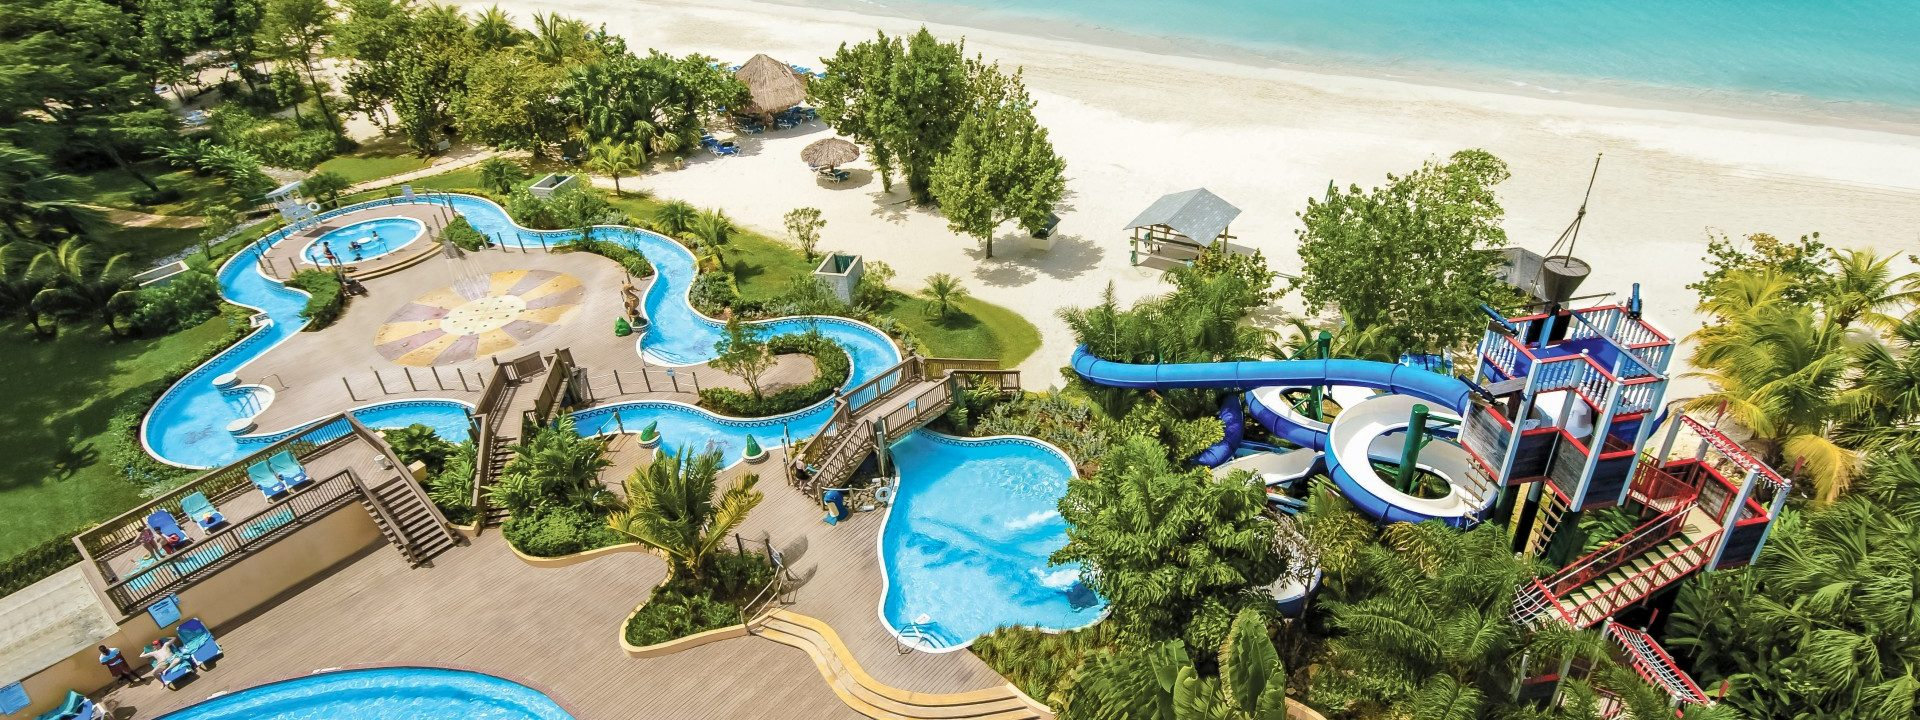 10 Reasons Why Beaches Negril Should Be Your Next Family Vacation